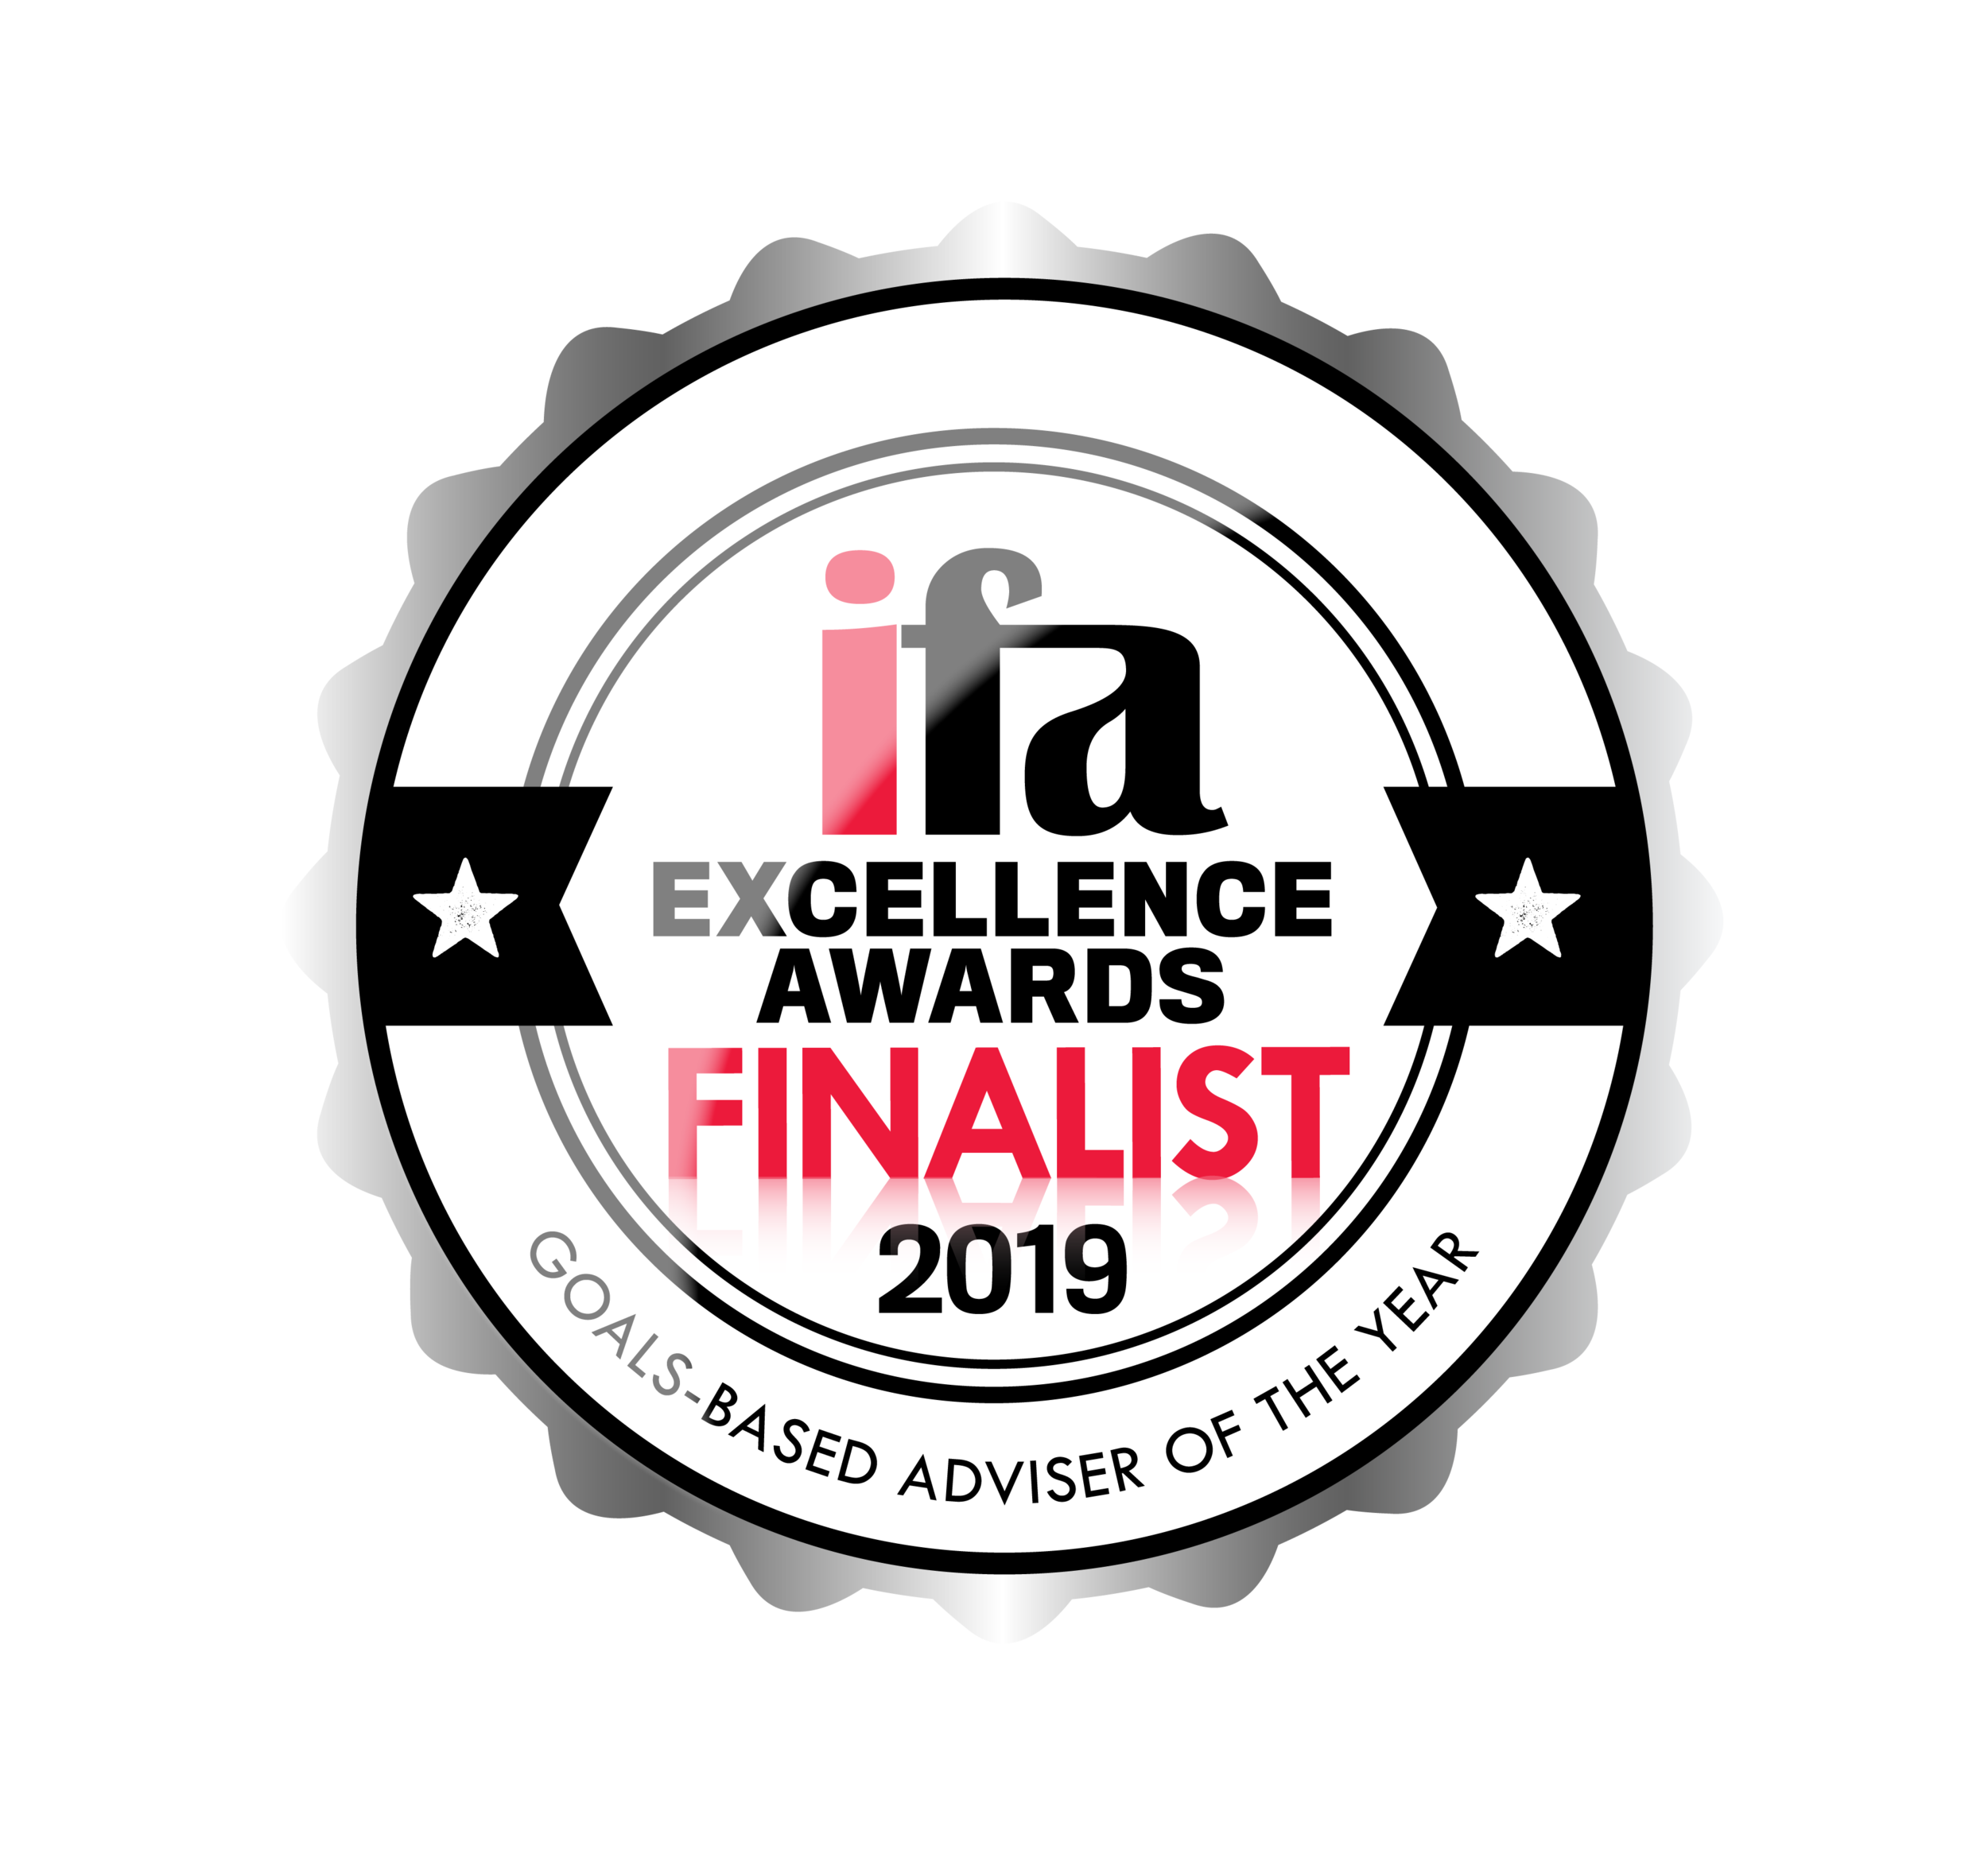 IFA_SEAL_2019_FINALIST_Goals-based Adviser of the Year.png